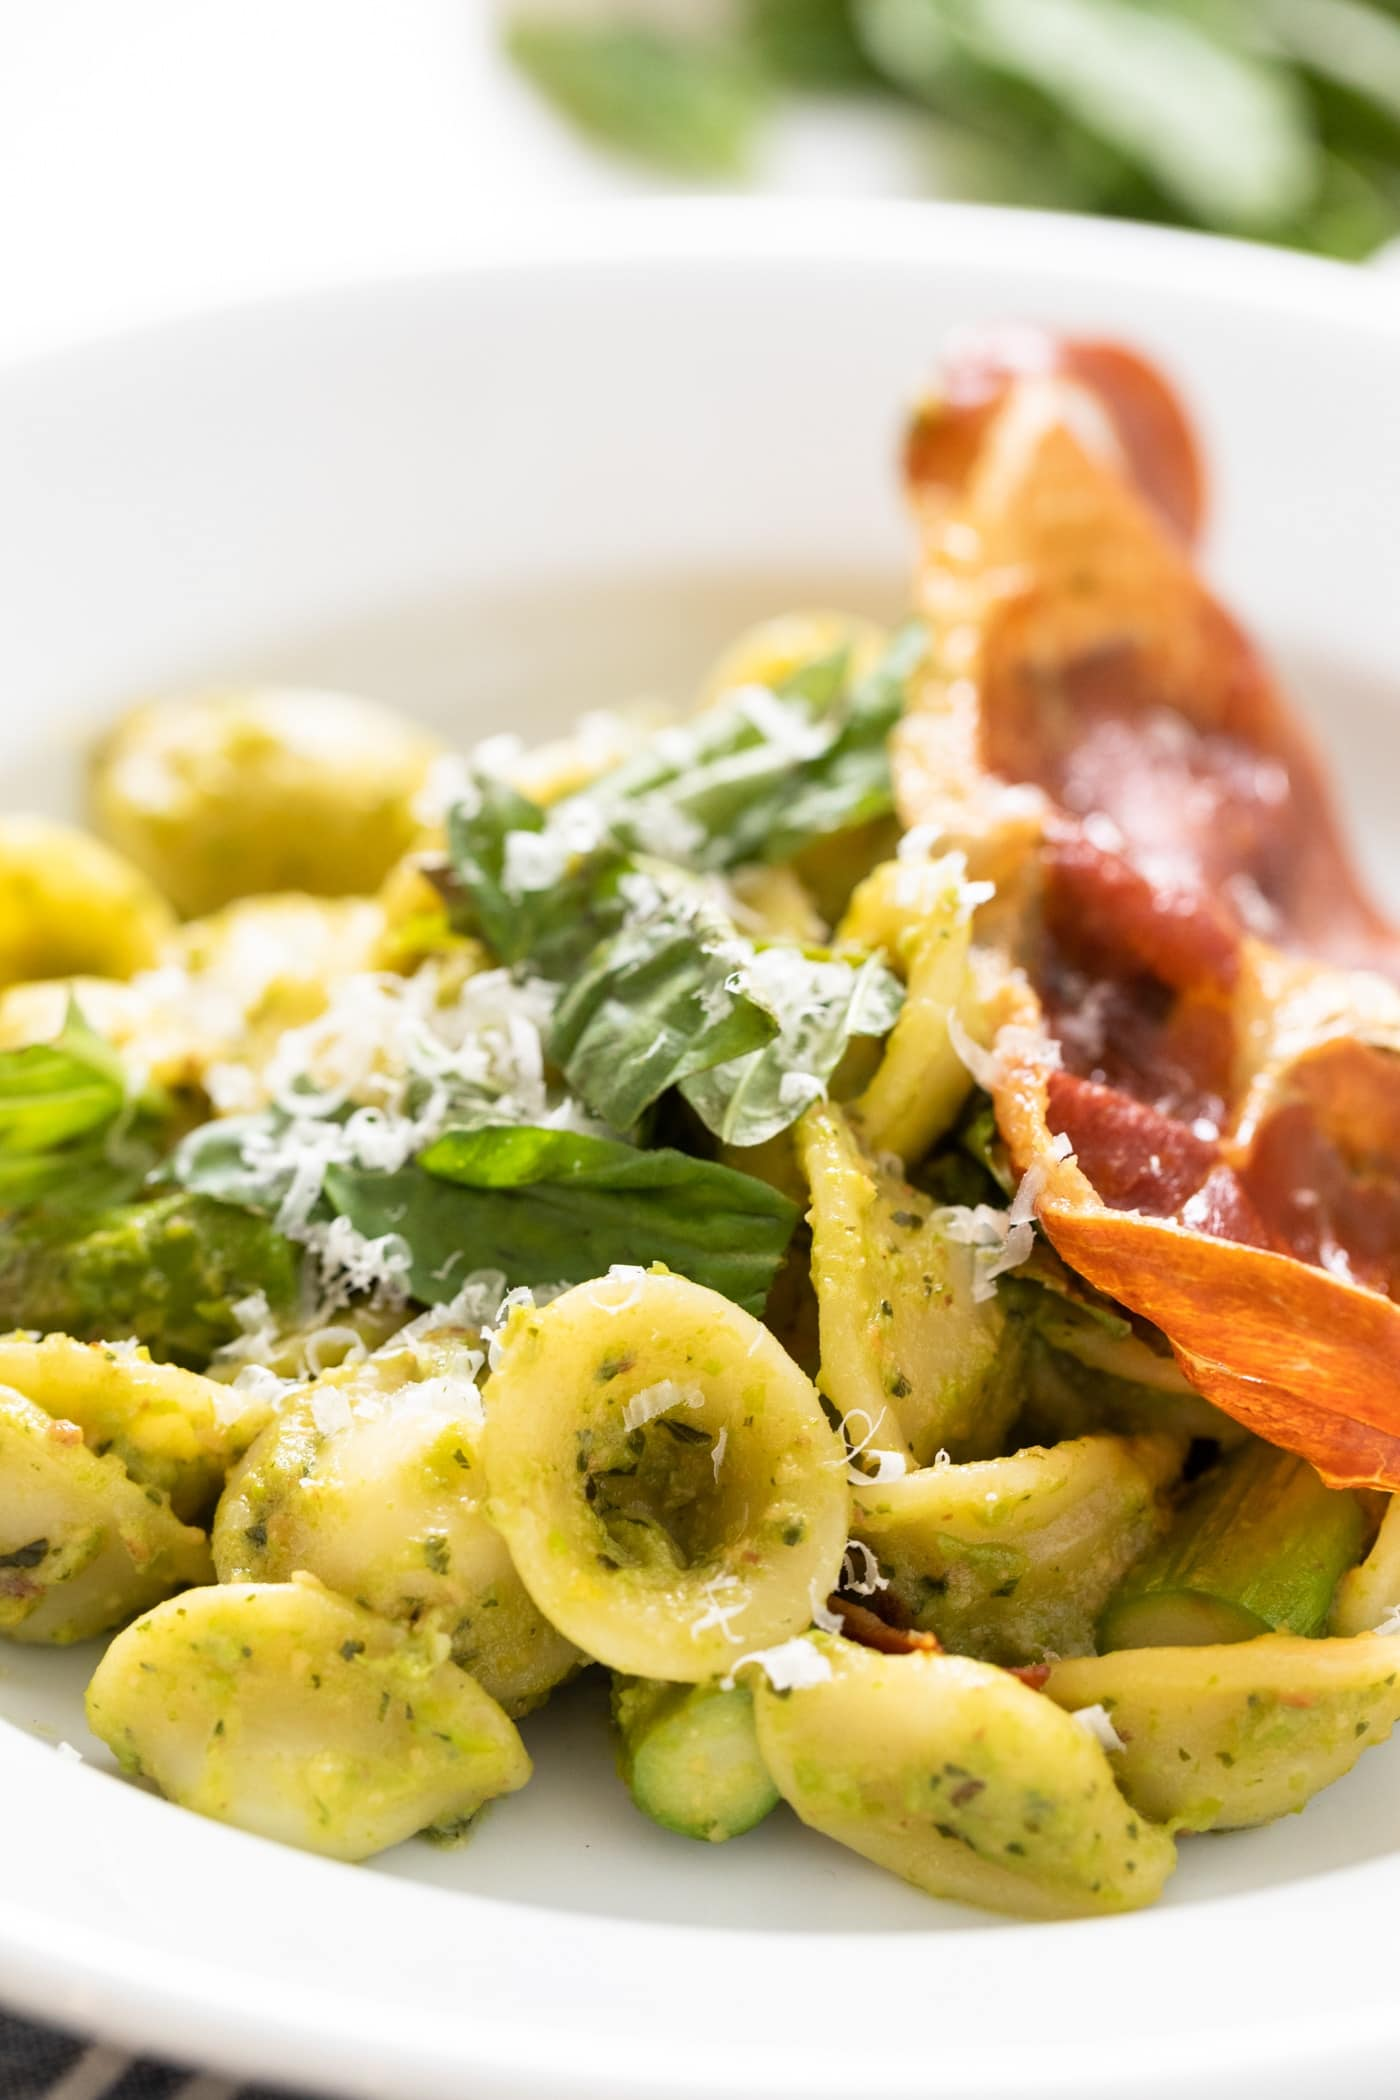 Close up view of pieces of pesto covered pasta sitting on white plate with slice of crispy prosciutto and basil leaves sitting on top